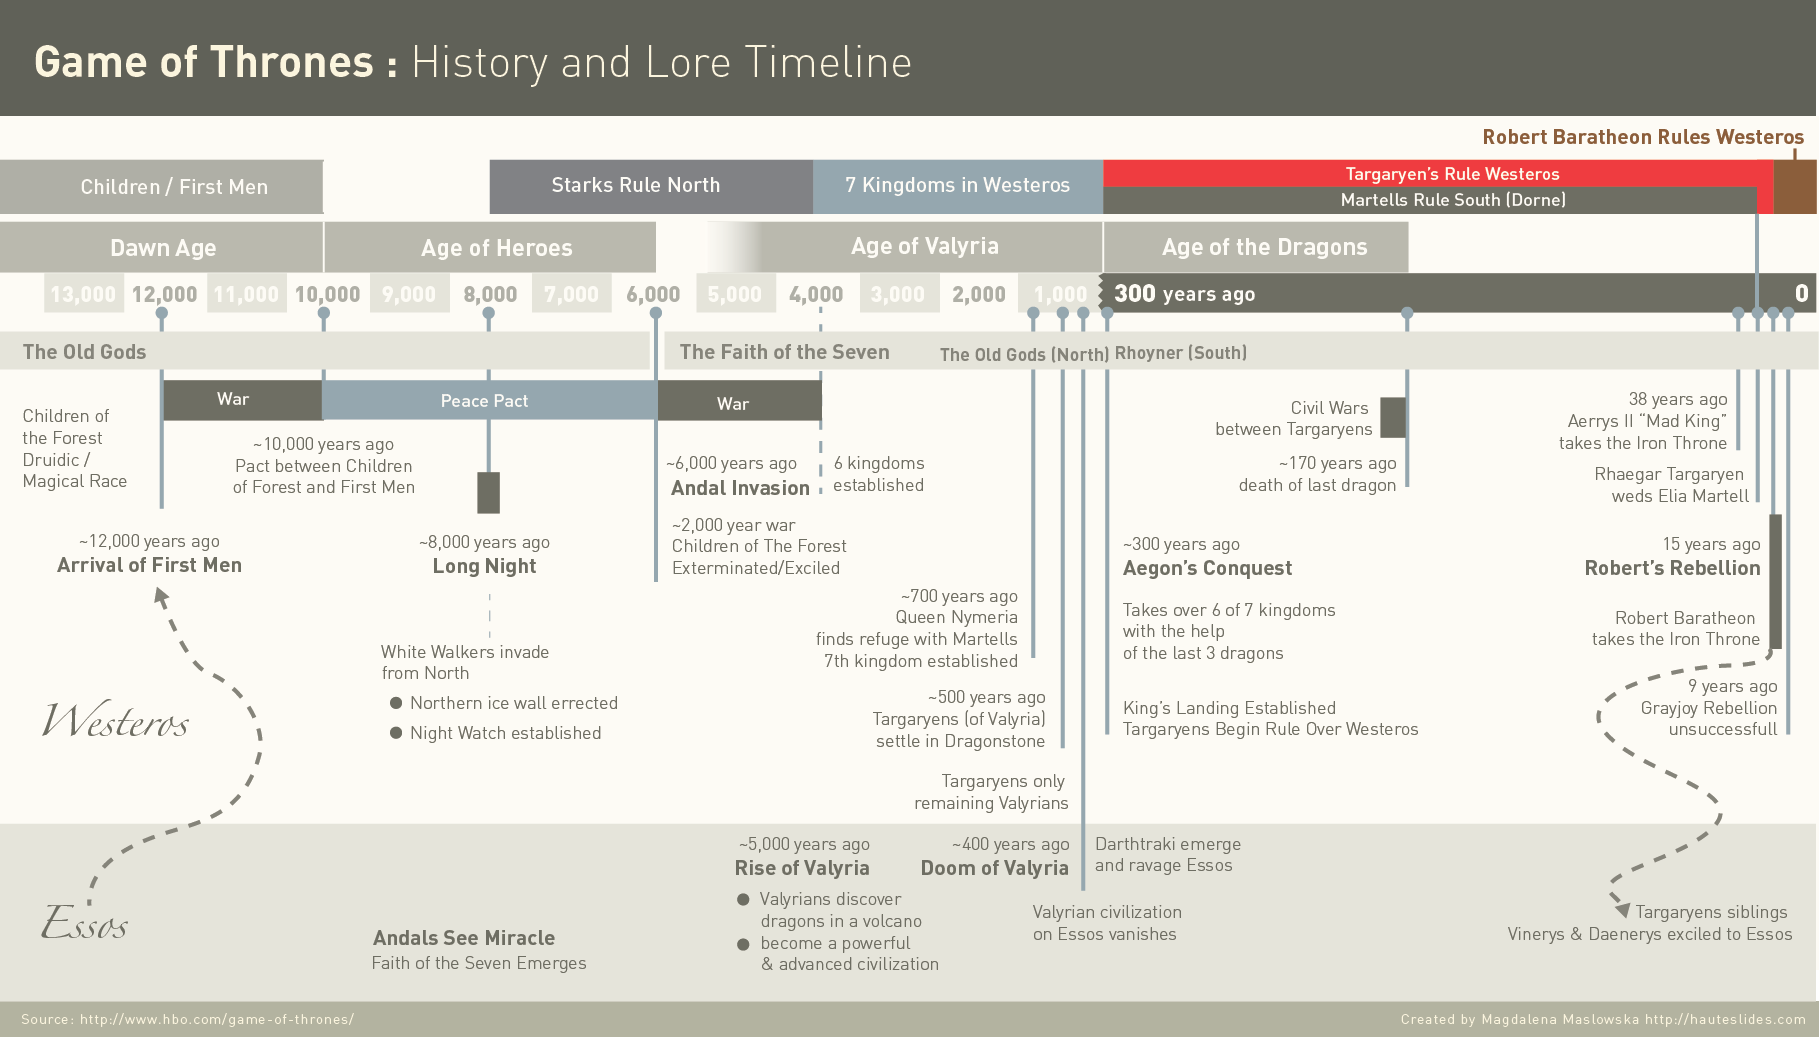 Game of Thrones Infographic : History and Lore Timeline v1.0 | HauteSlides